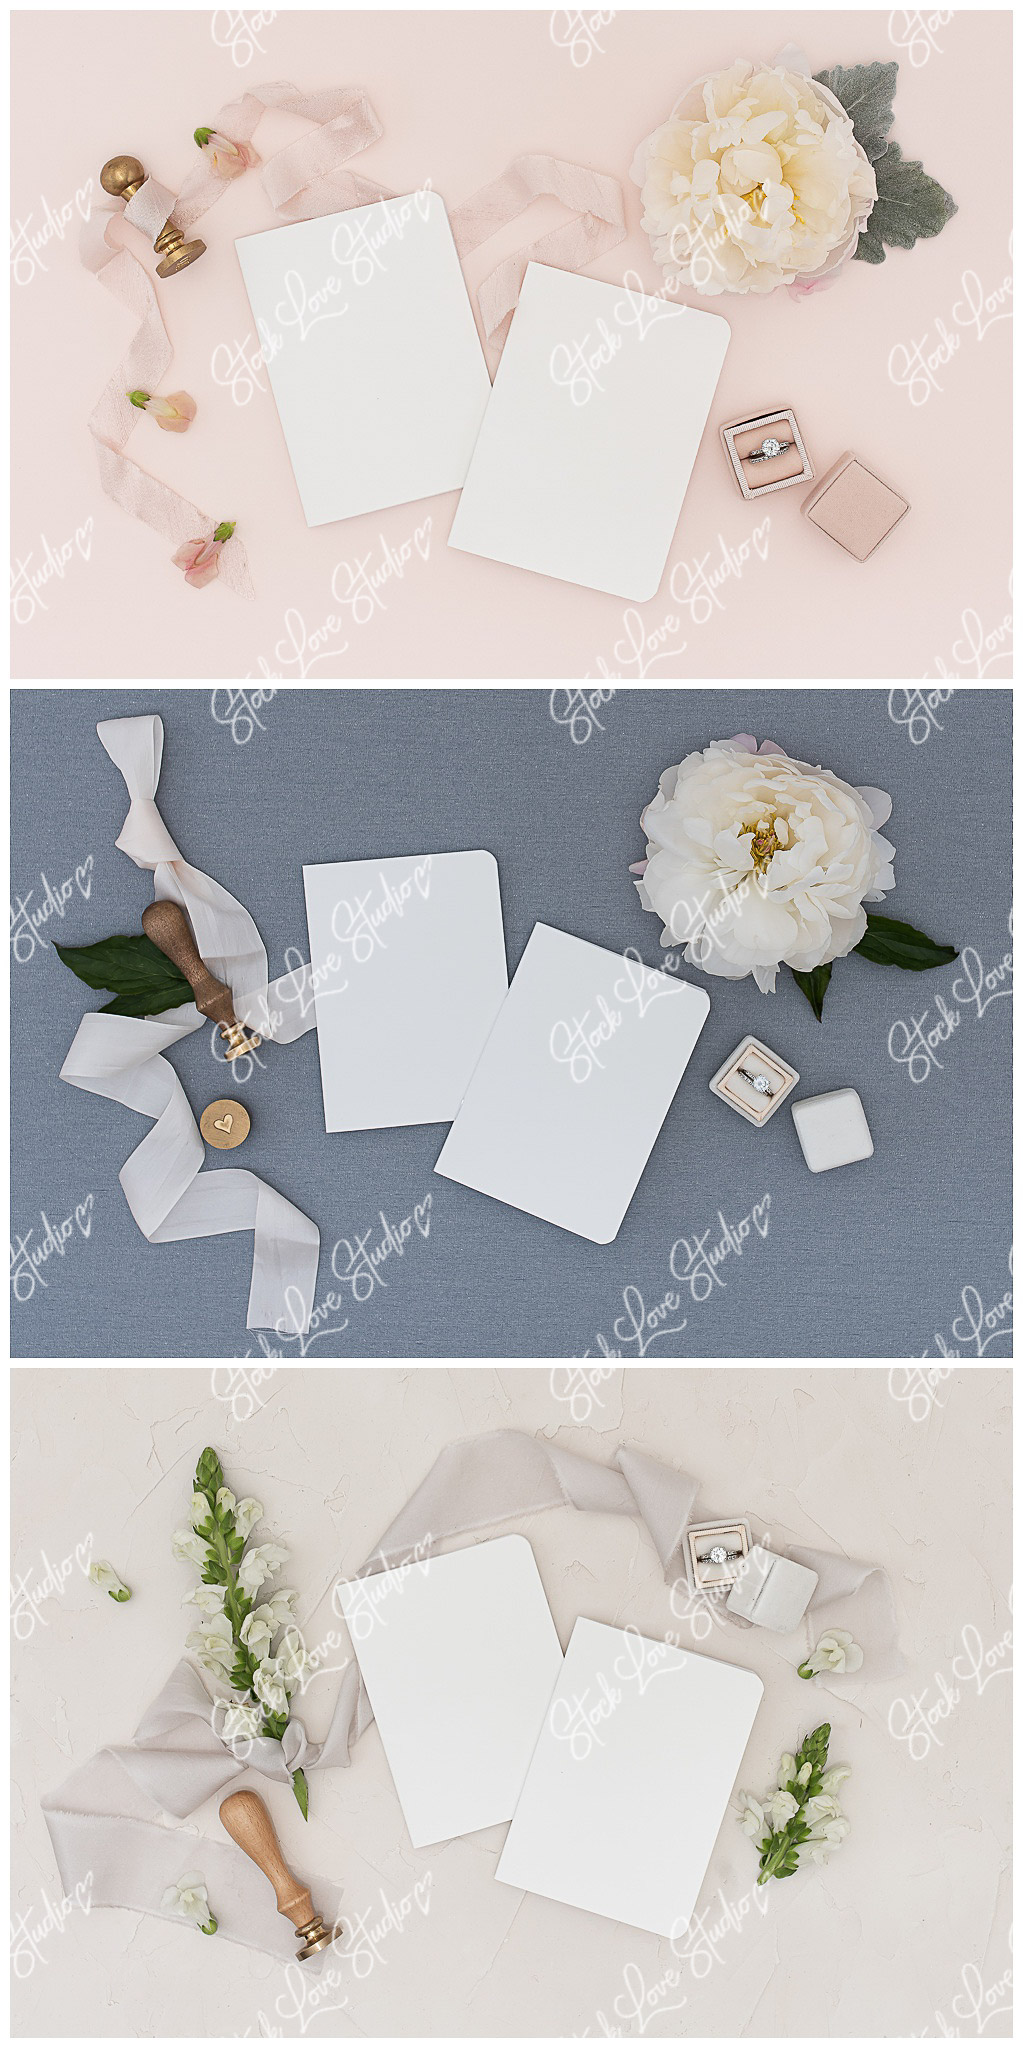 custom_stationery_mockup_0002.jpg